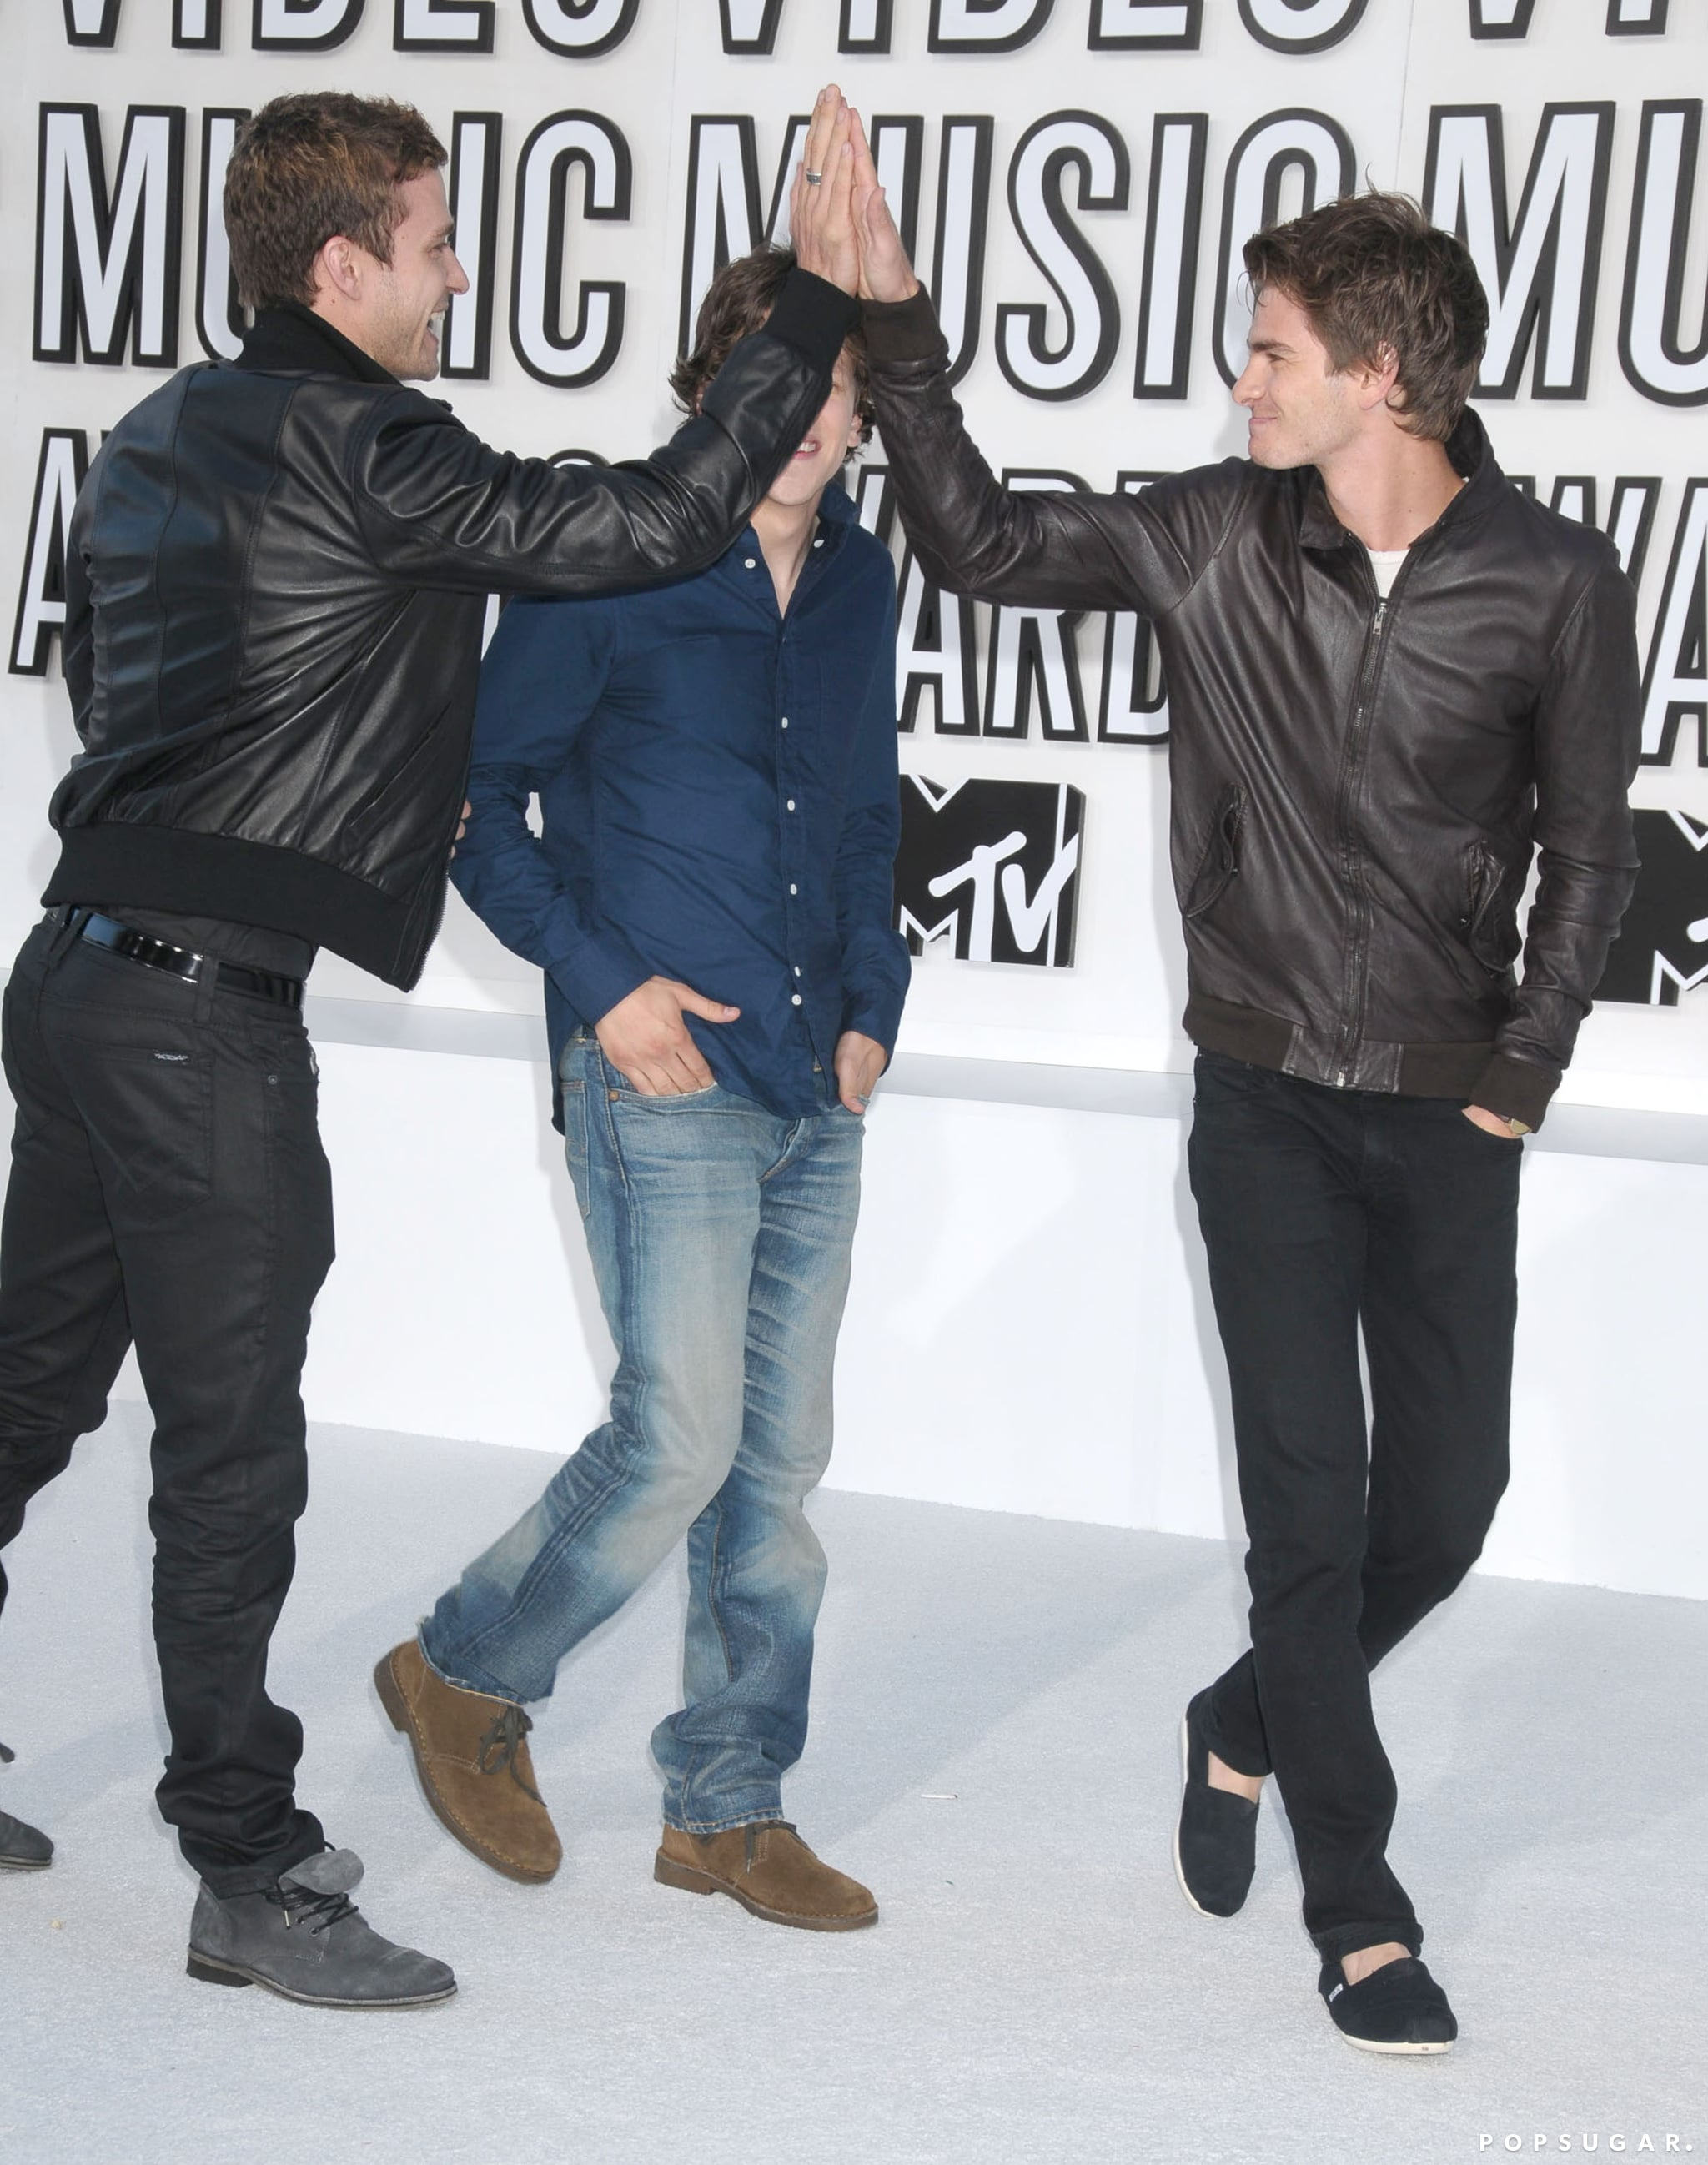 Justin Timberlake gave Andrew Garfield a high five when they attended the MTV VMAs with Jesse Eisenberg in 2010.